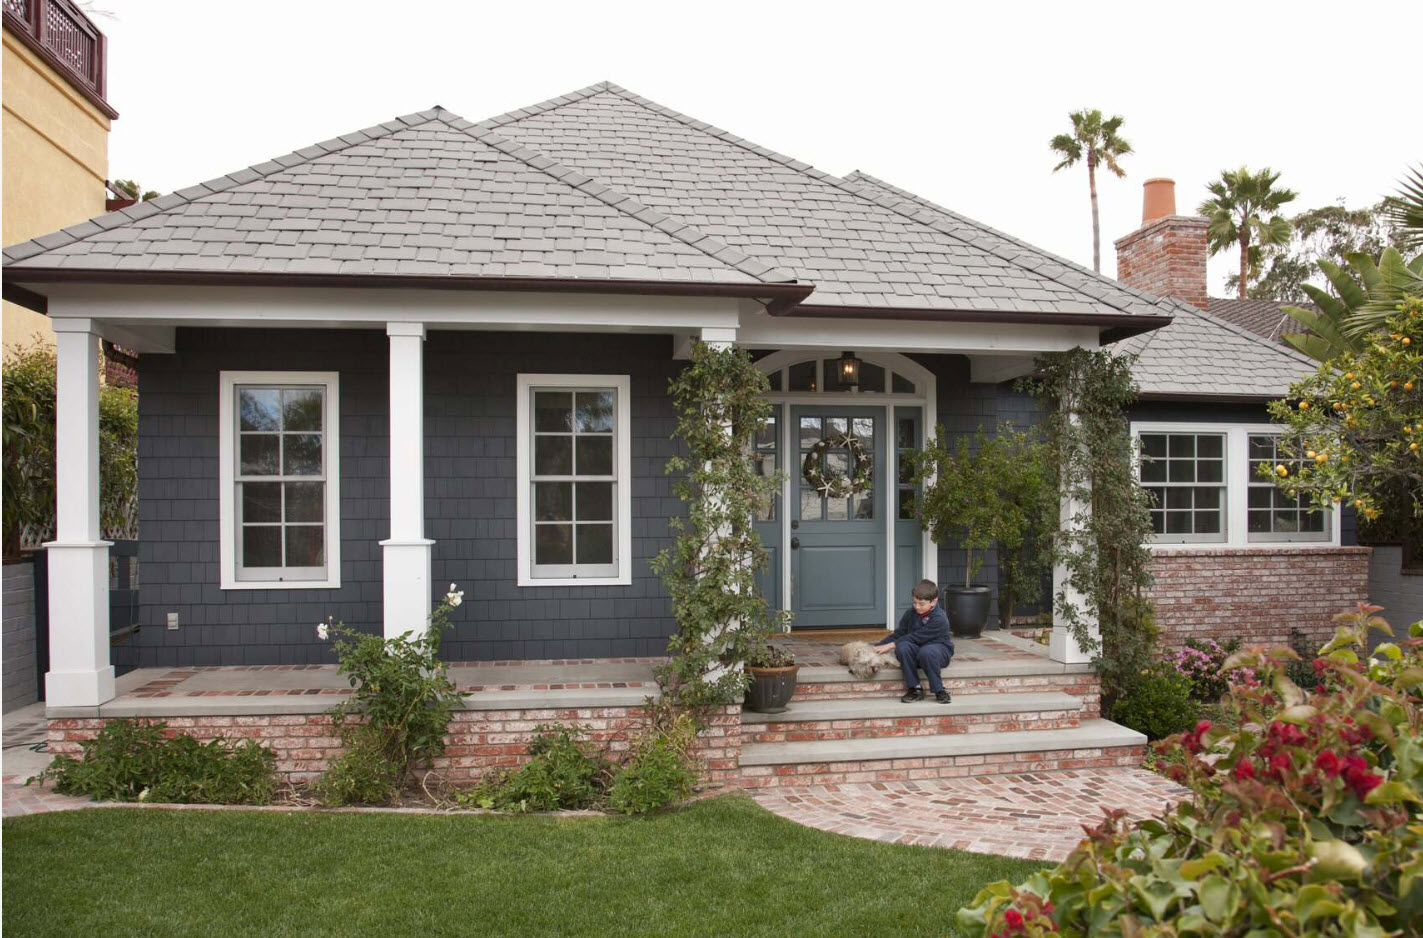 Modern American rustical style with gray walls and complex gabled roof